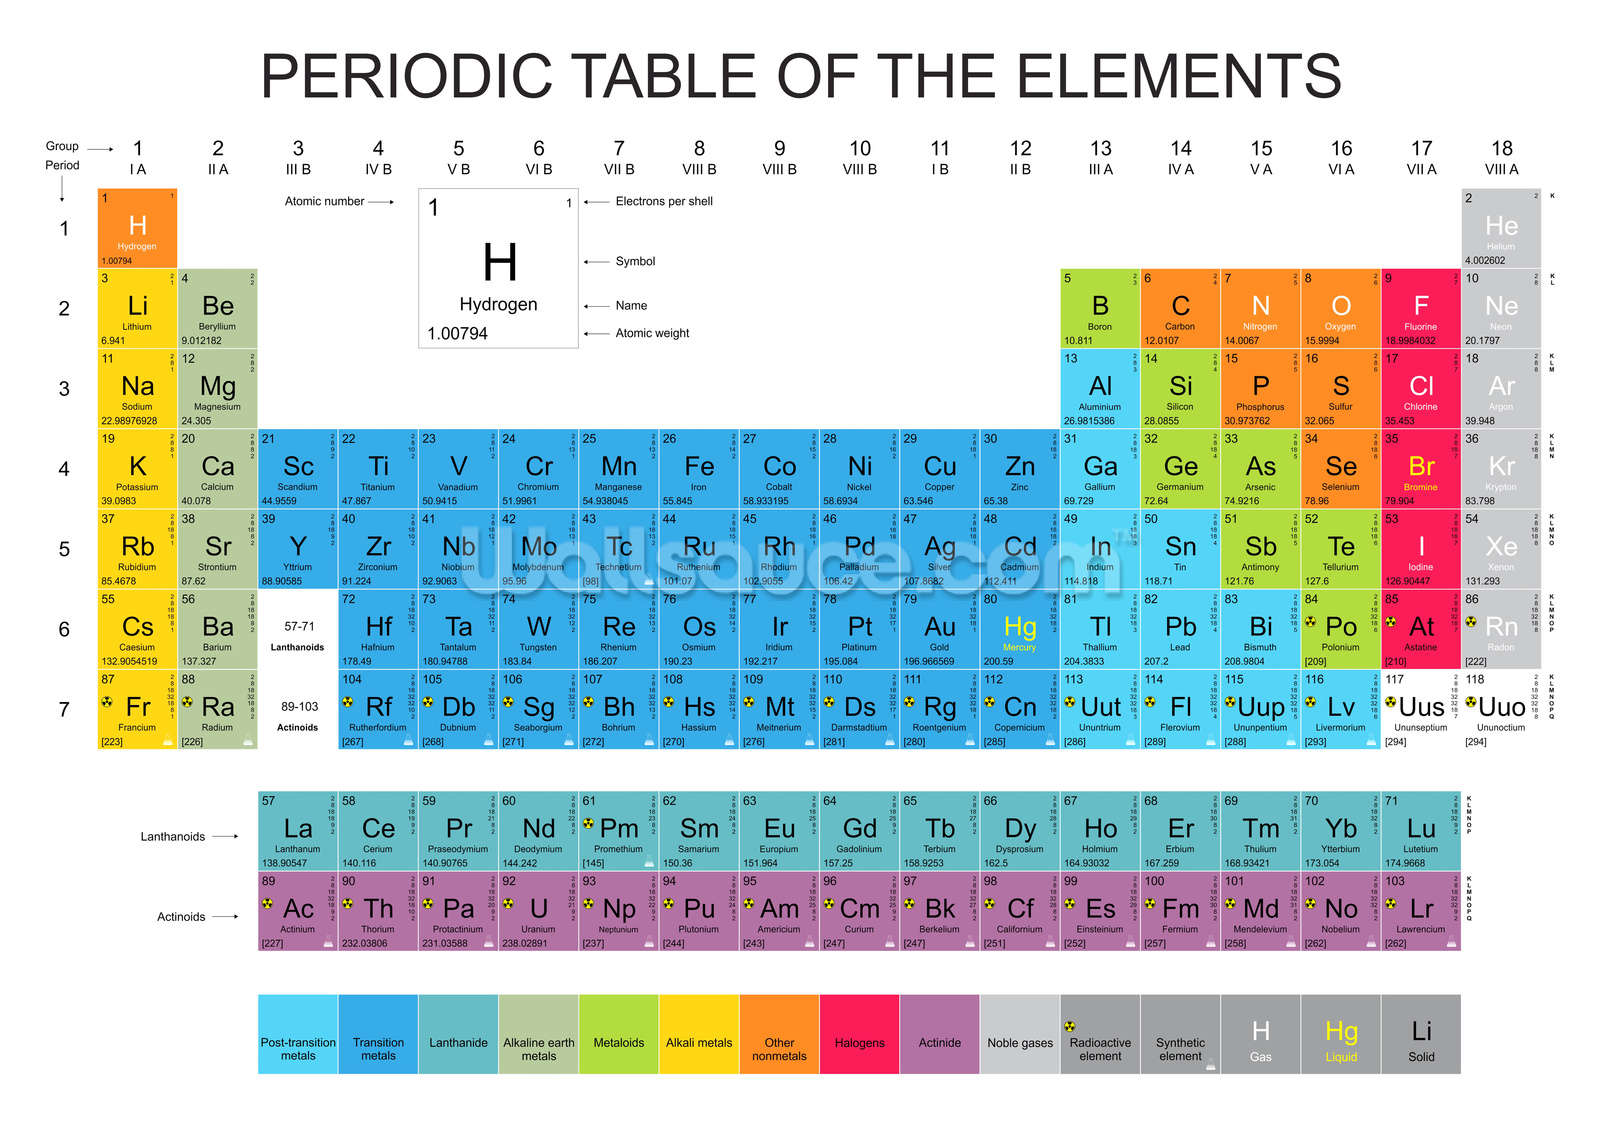 Periodic table of the elements blue wallpaper wall mural periodic table of the elements blue wall mural photo wallpaper gamestrikefo Image collections